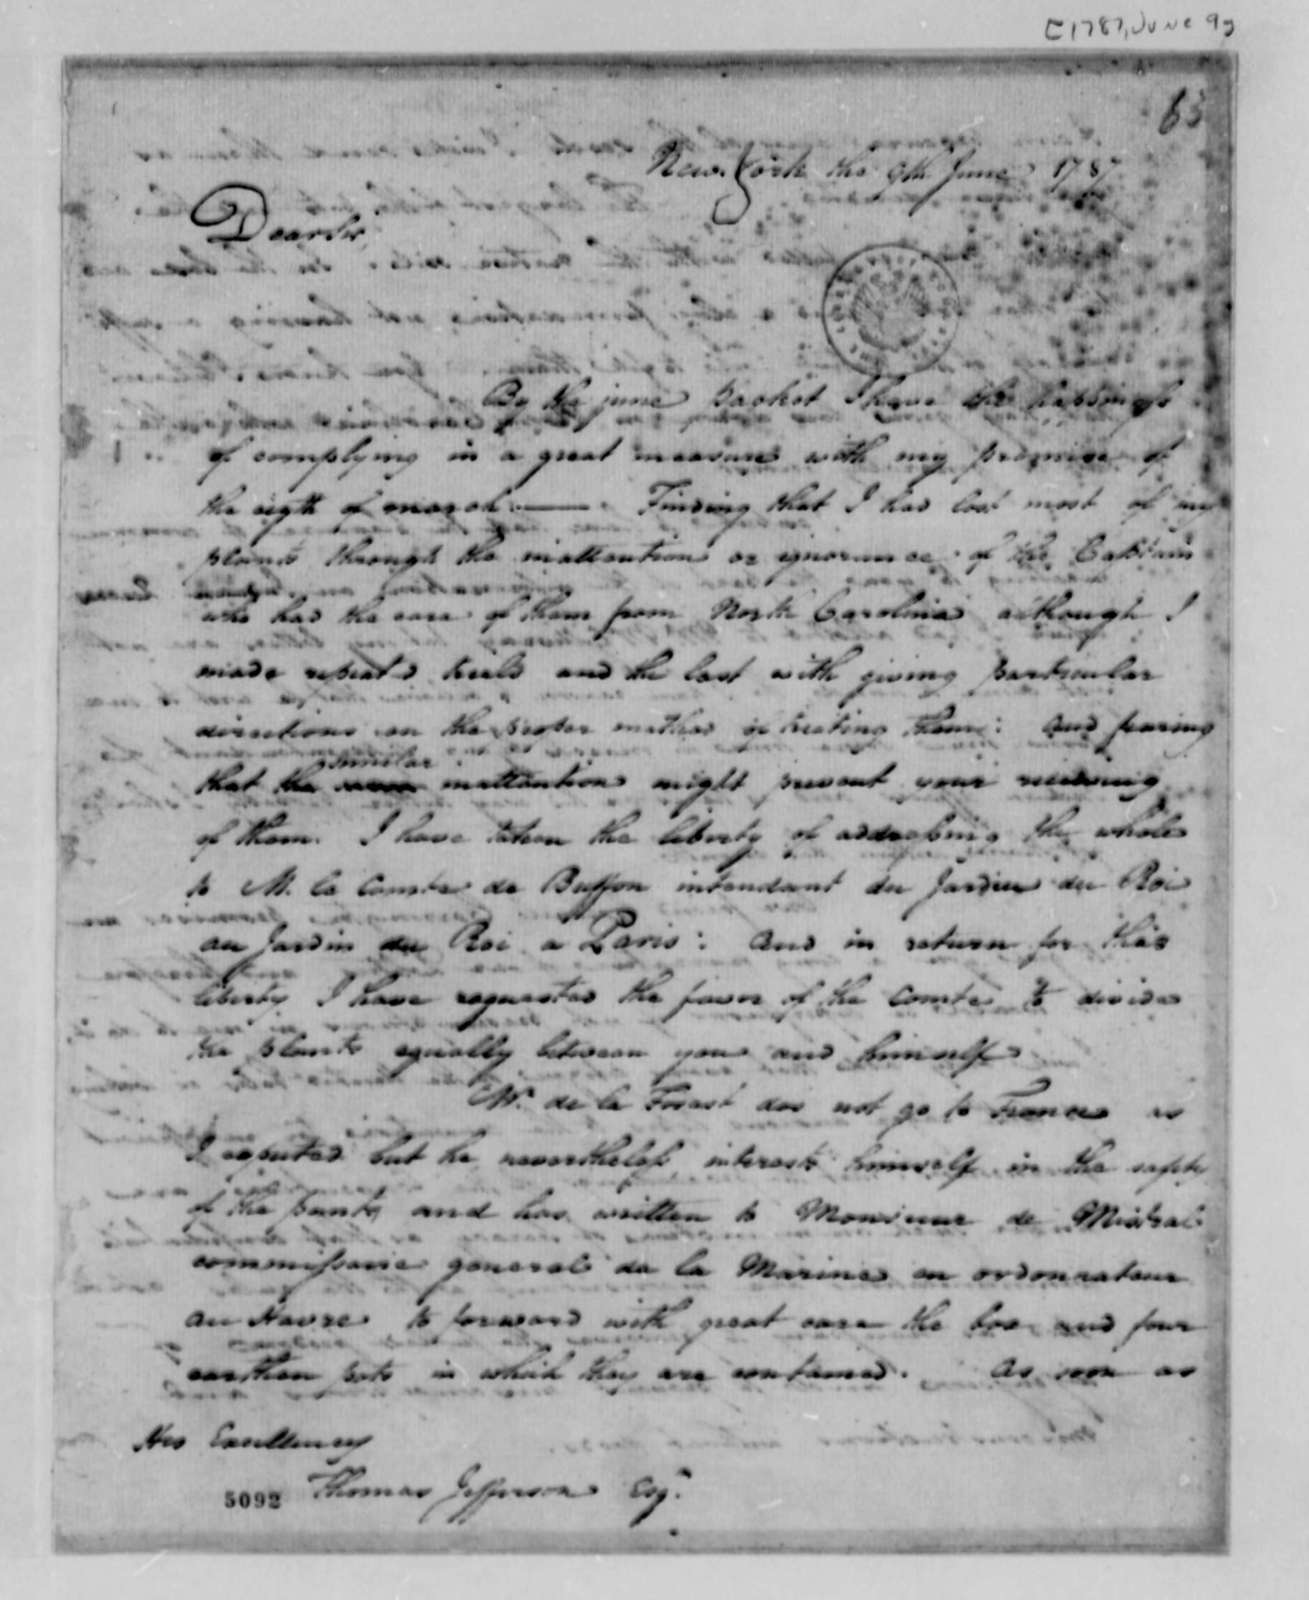 Benjamin Hawkins to Thomas Jefferson, June 9, 1787